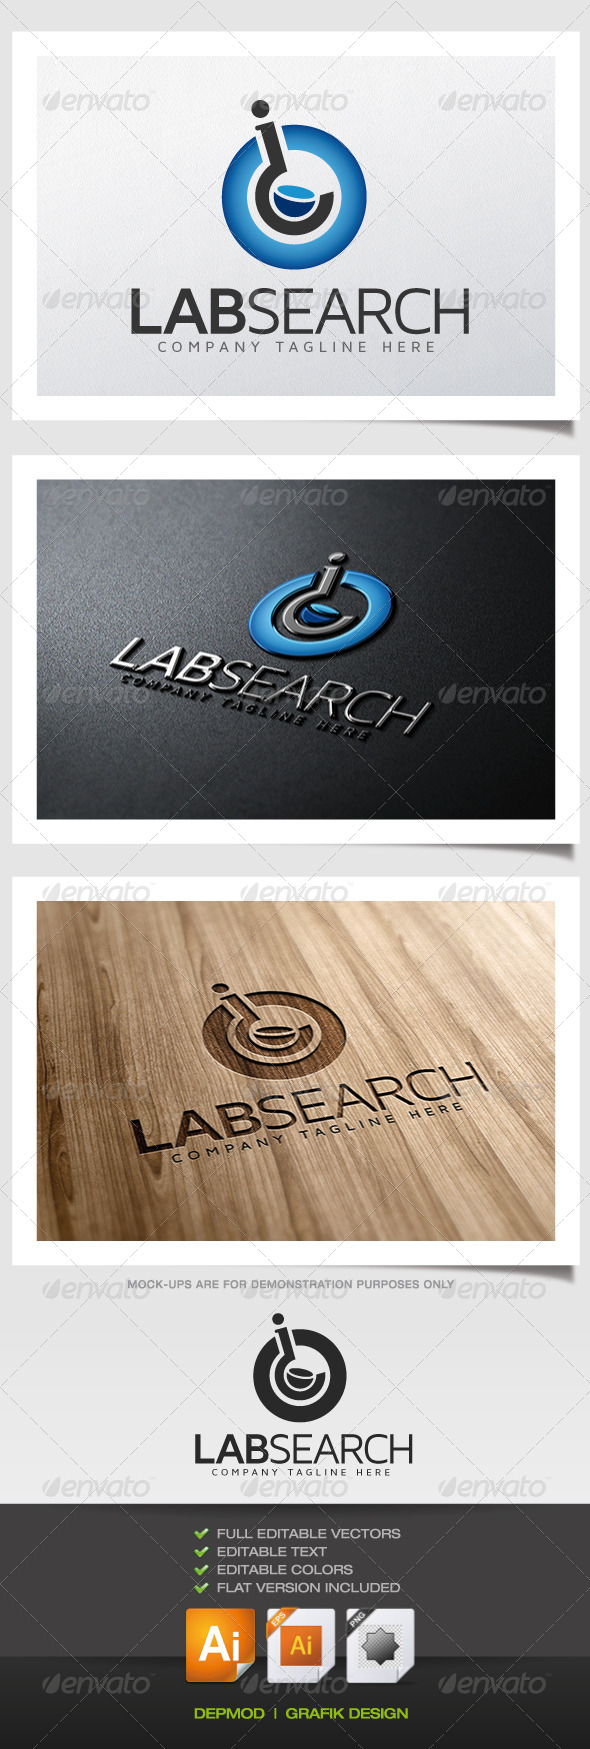 Lab Search Logo - Symbols Logo Templates